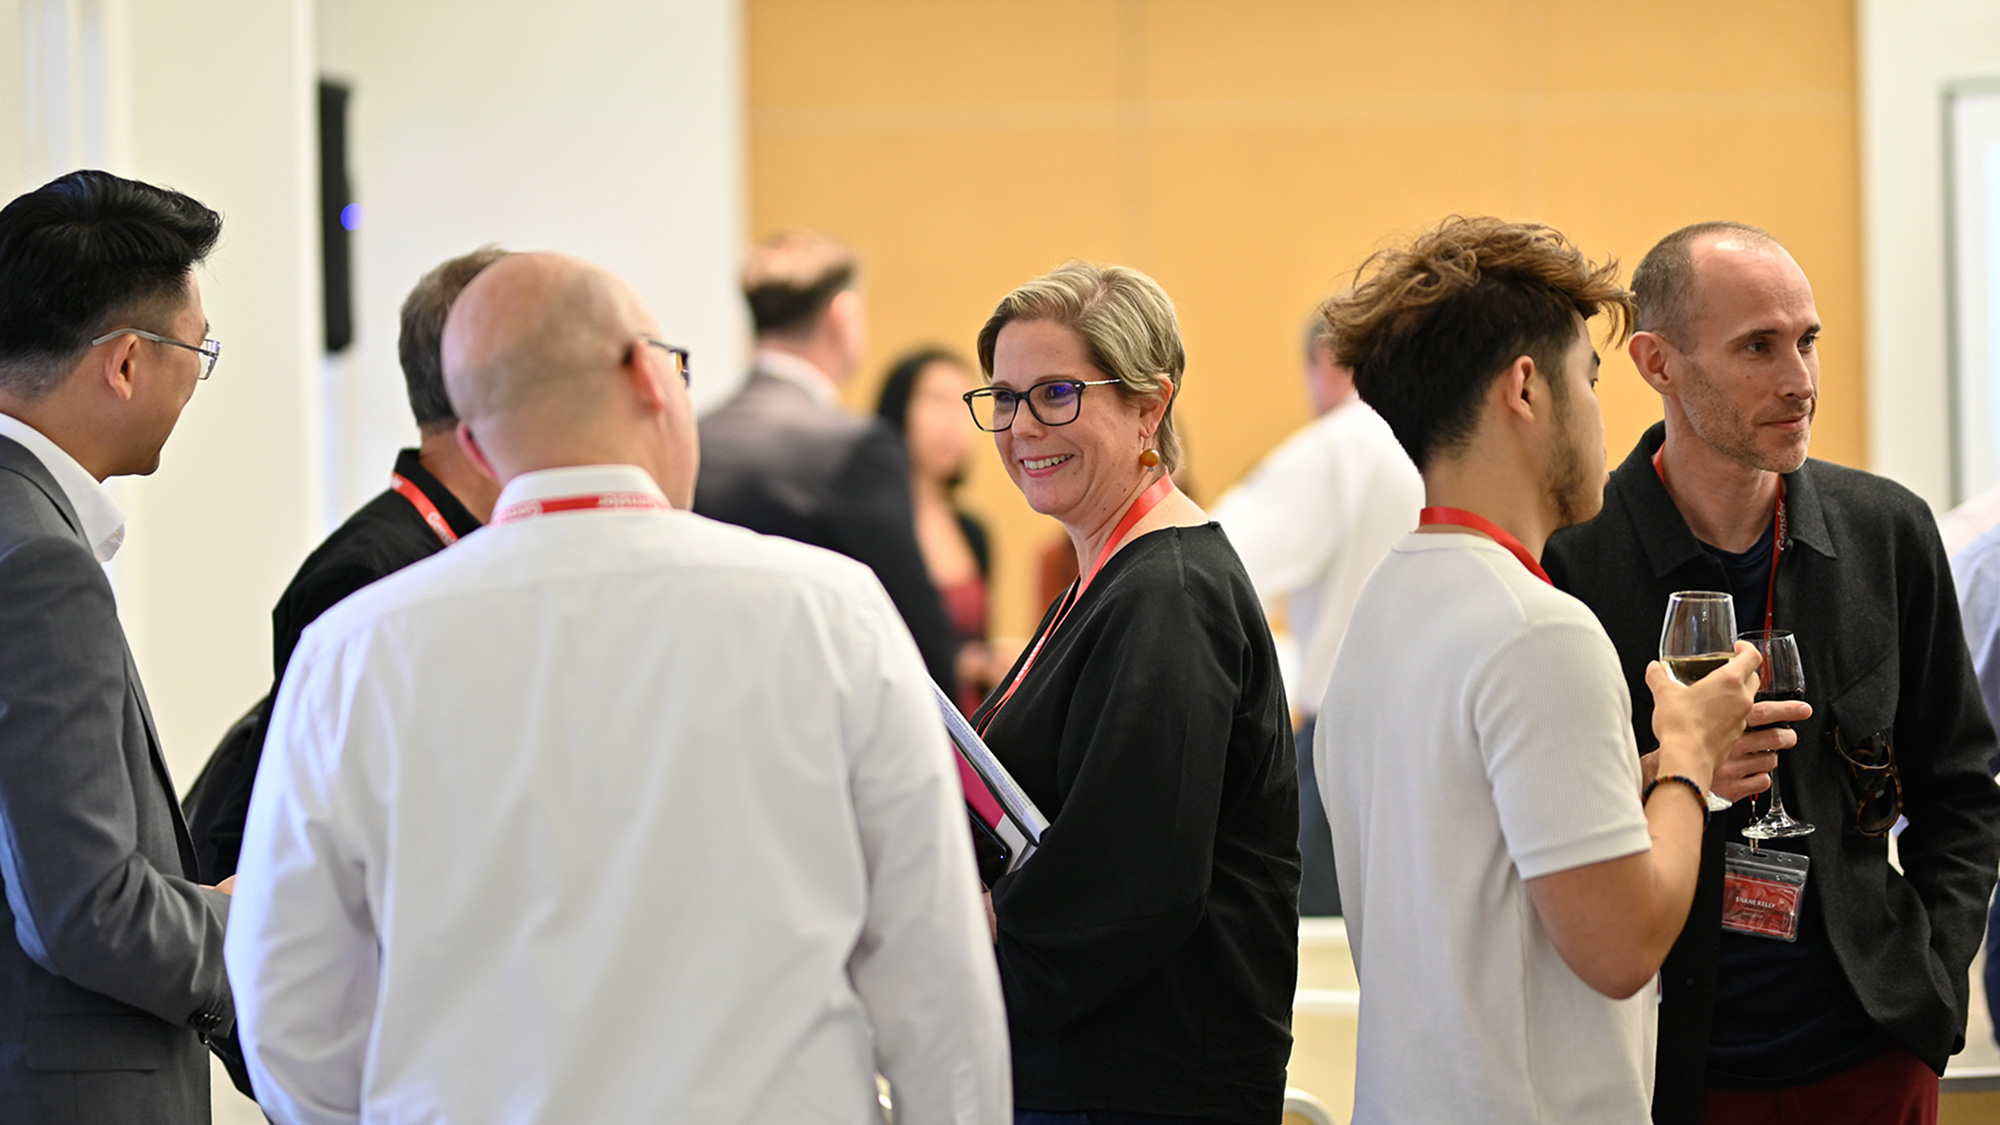 Gensler Singapore Co-Managing Director Angela Spathonis mingles with the crowd.